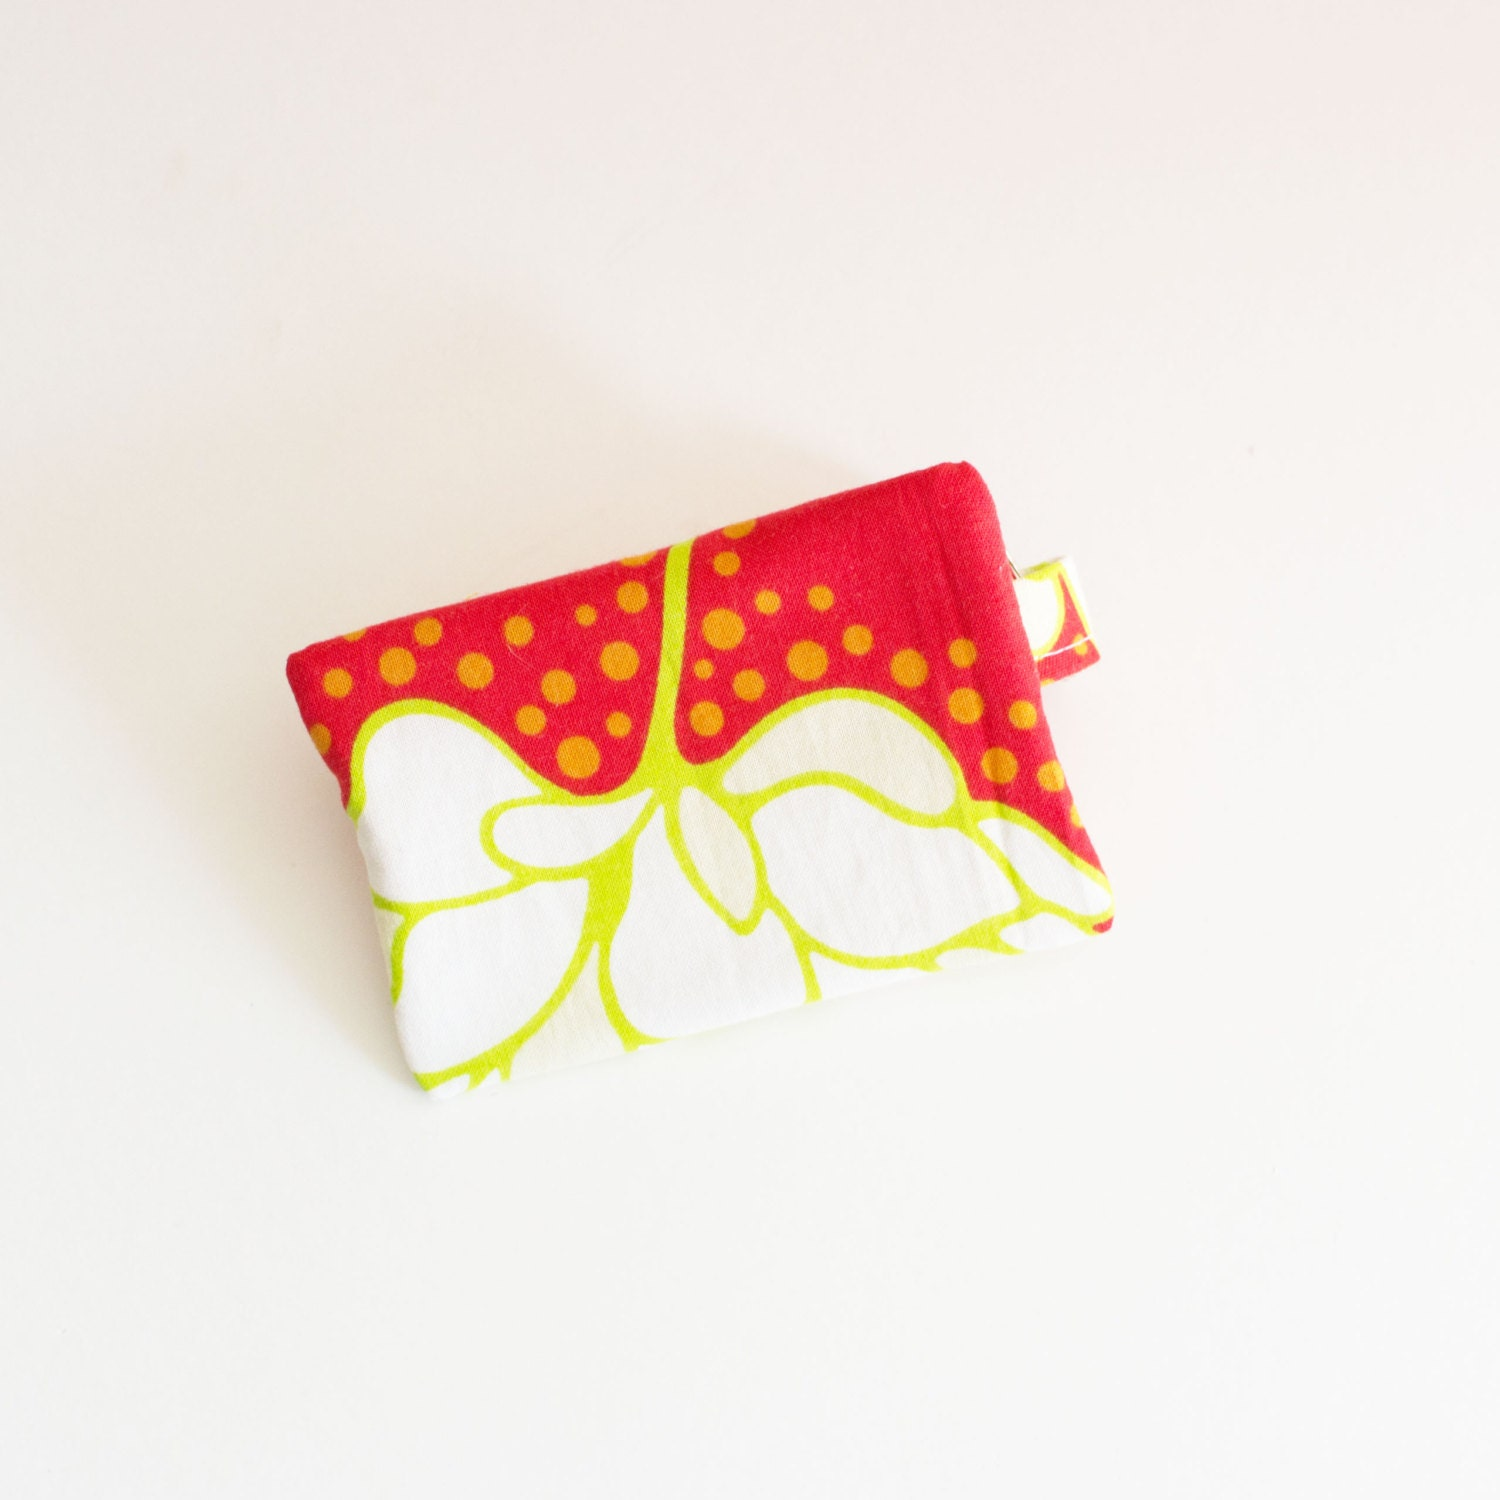 business card holder small zipper pouch flash drive holder red